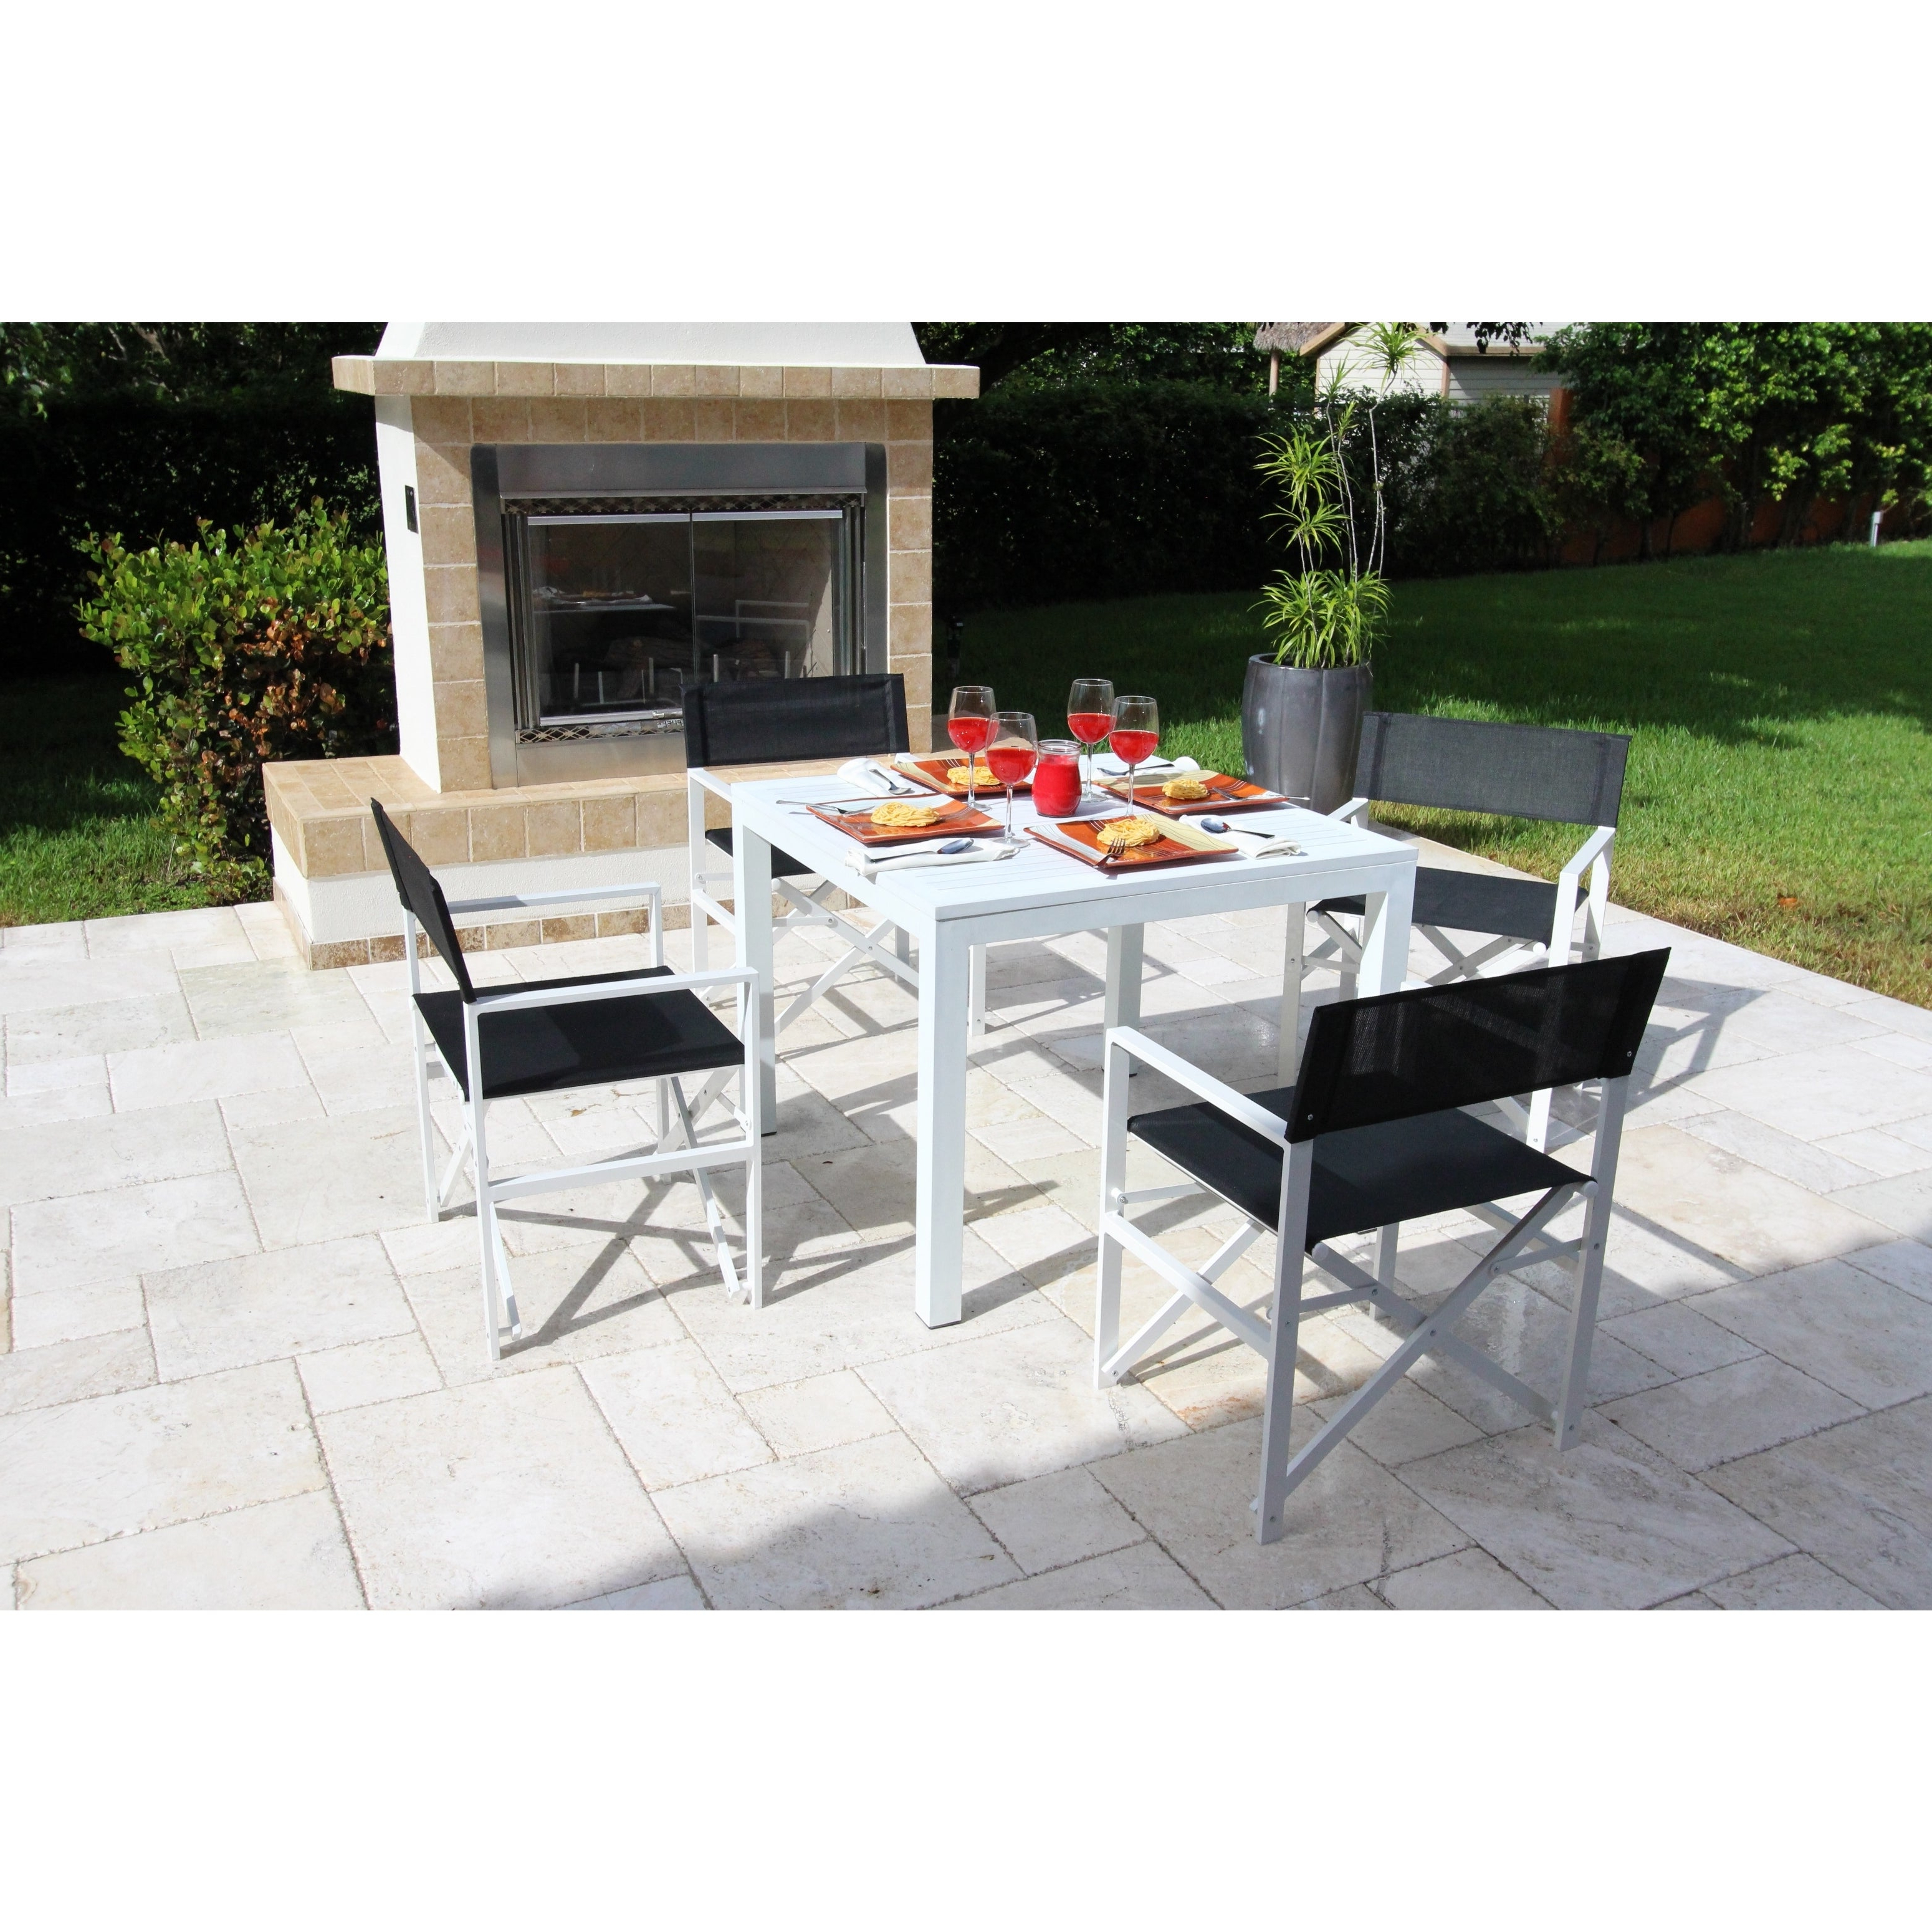 Most Popular Delmar 5 Piece Dining Sets In Shop Del Mar White Director Chair 5 Piece Dining Set – Free Shipping (View 8 of 25)